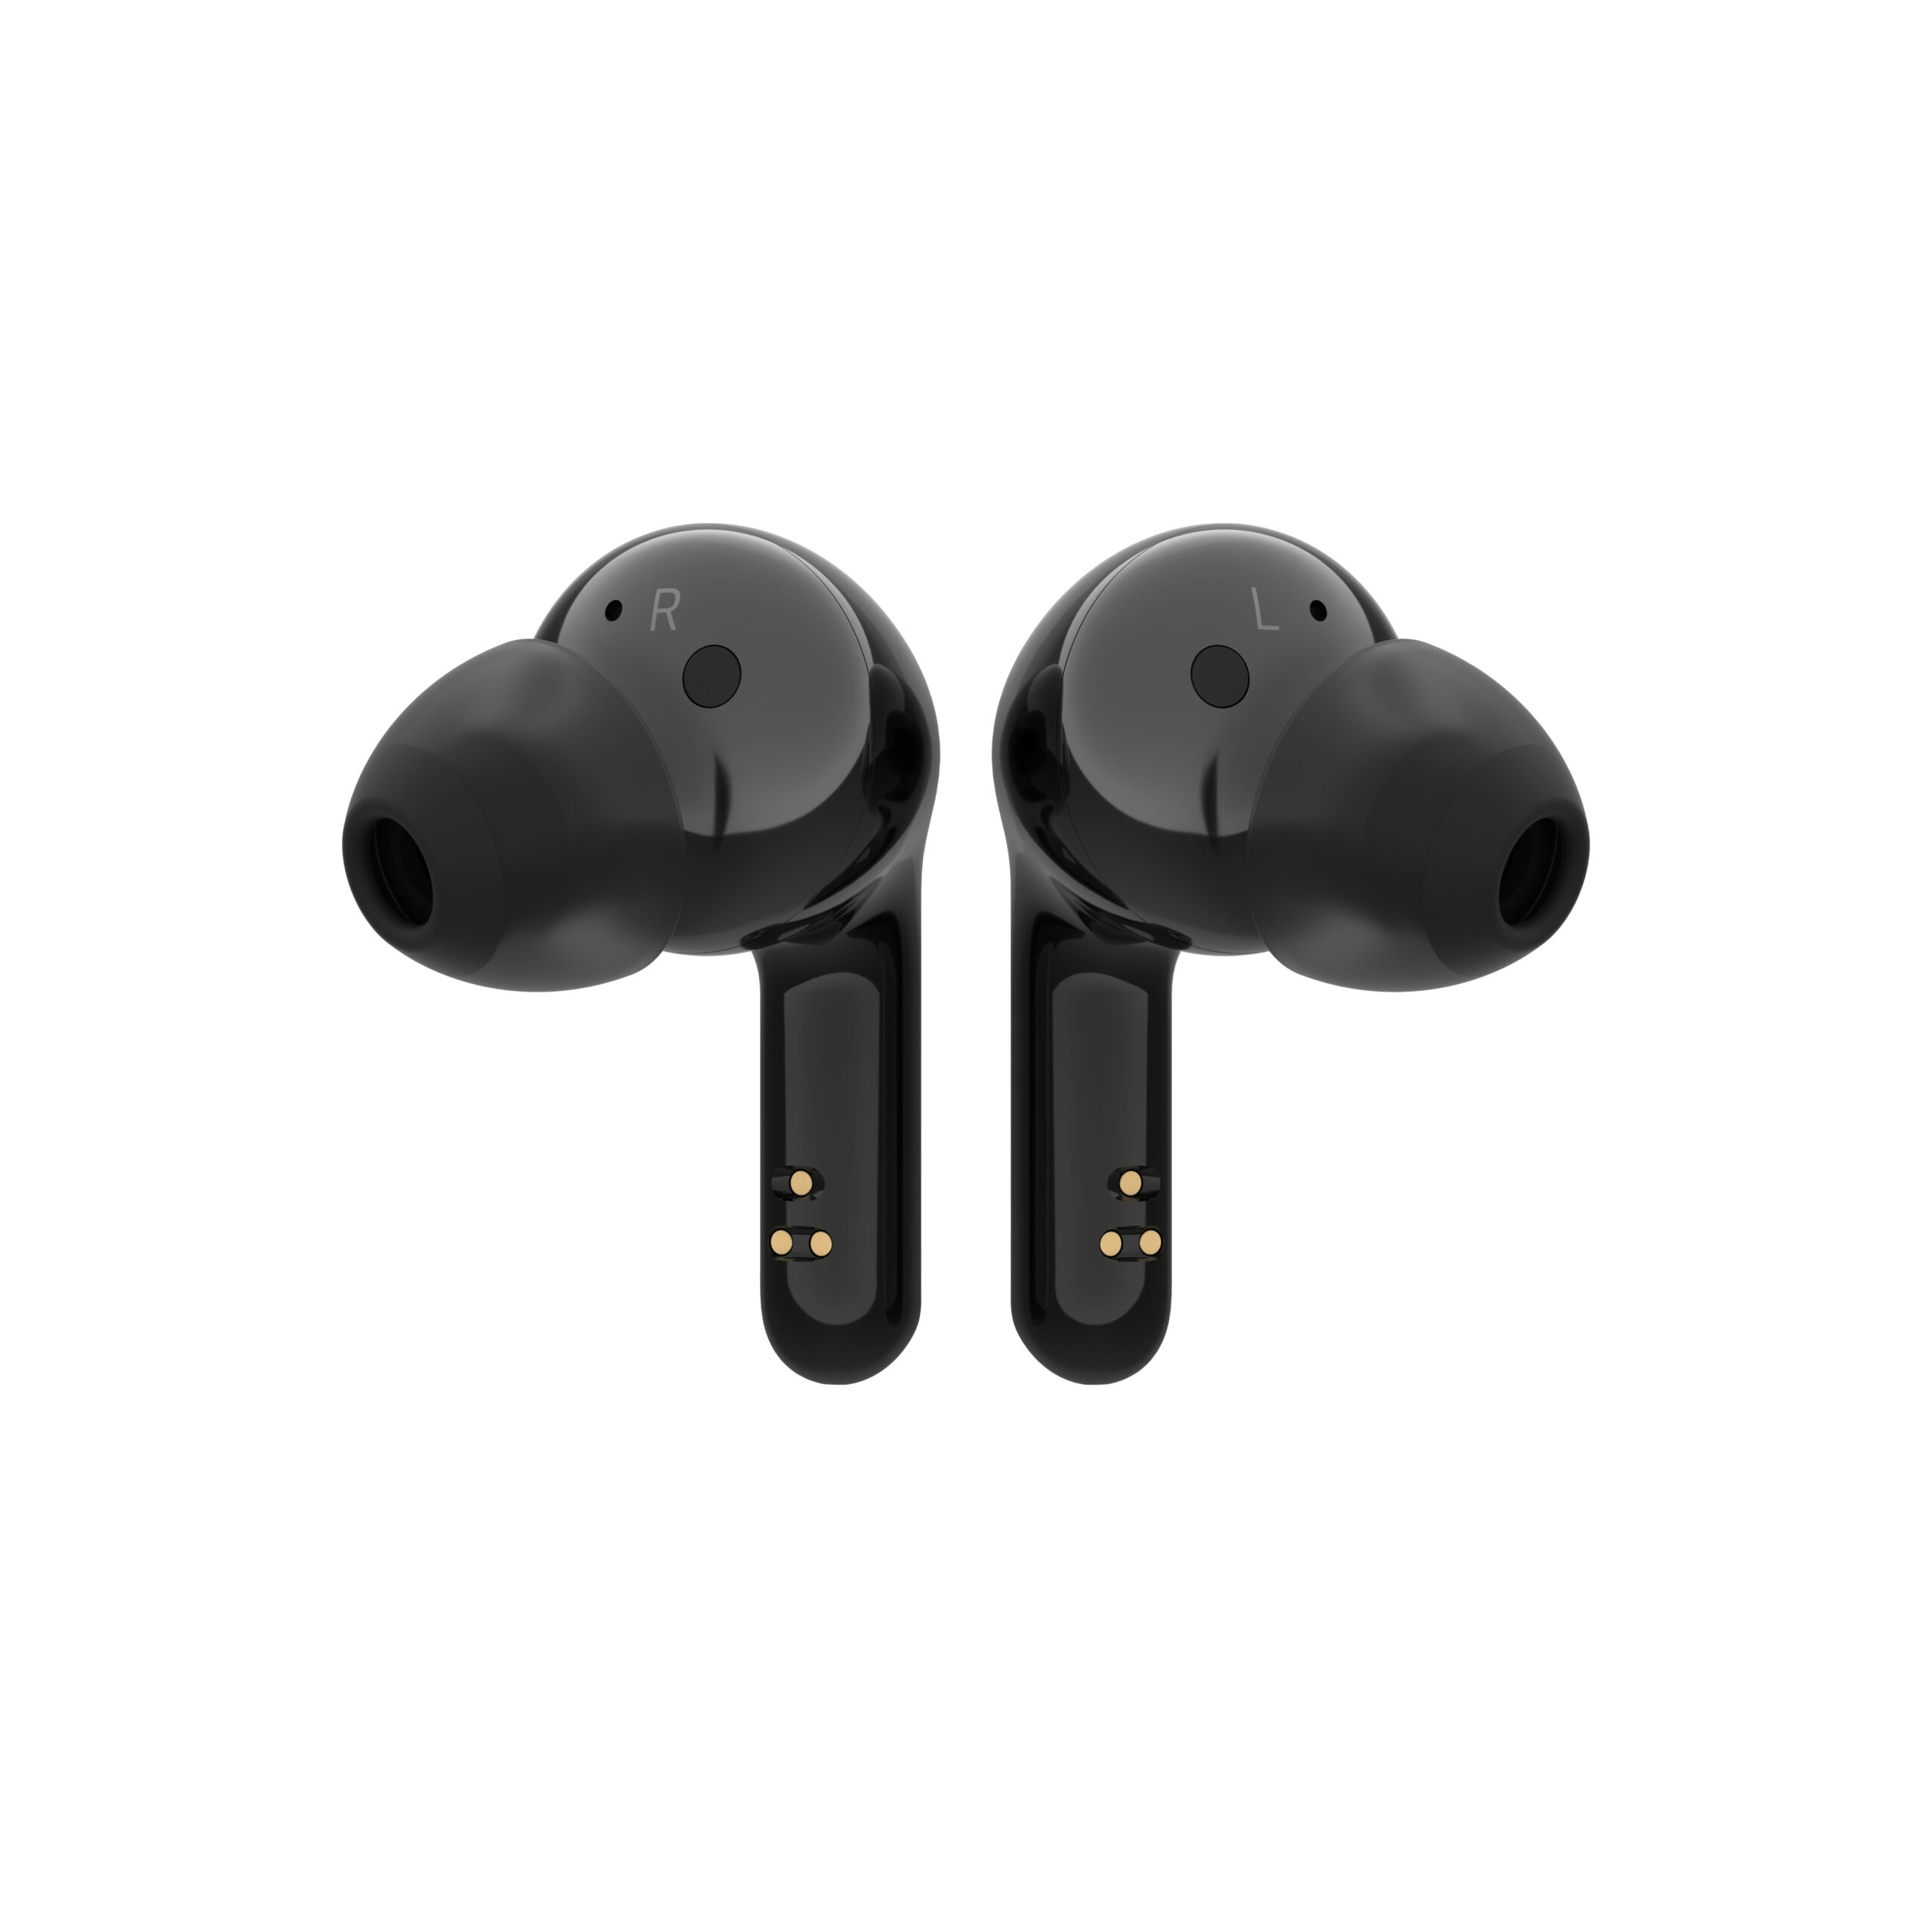 A pair of canal-type LG TONE Free in matte stylish black with each earbud facing the opposite direction